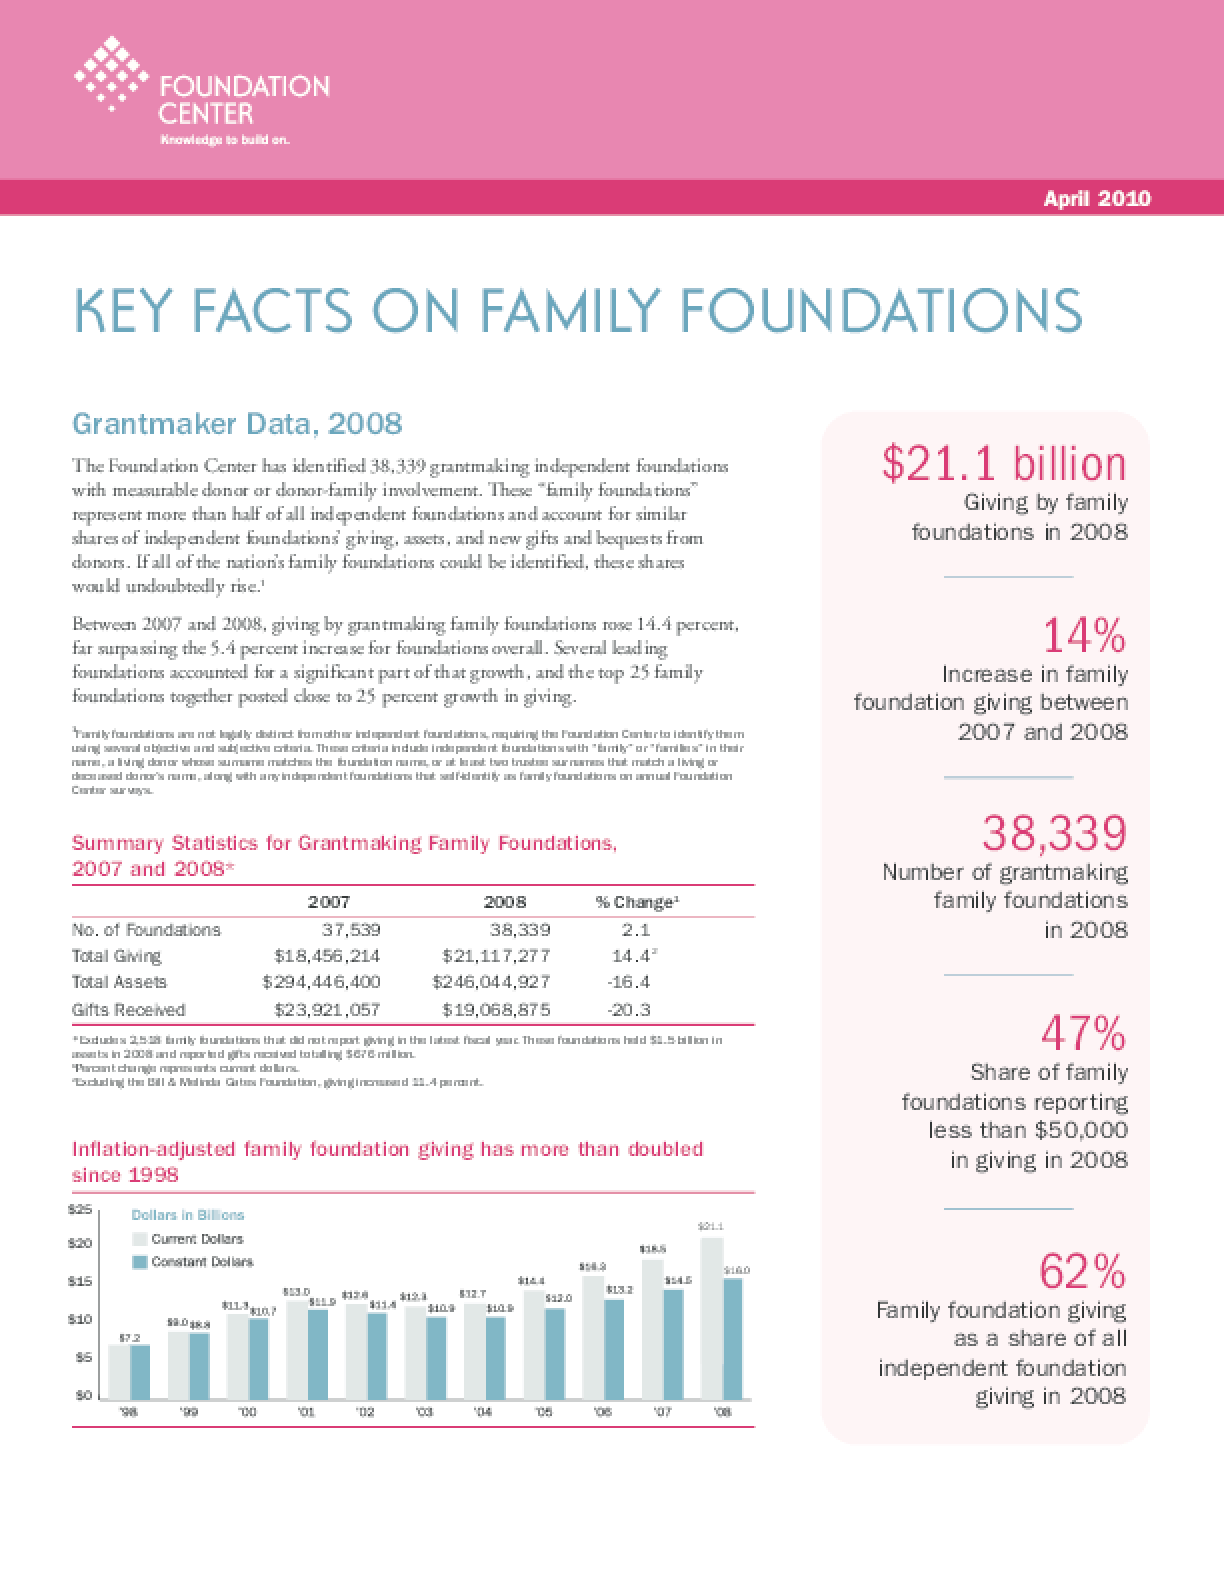 Key Facts on Family Foundations 2010